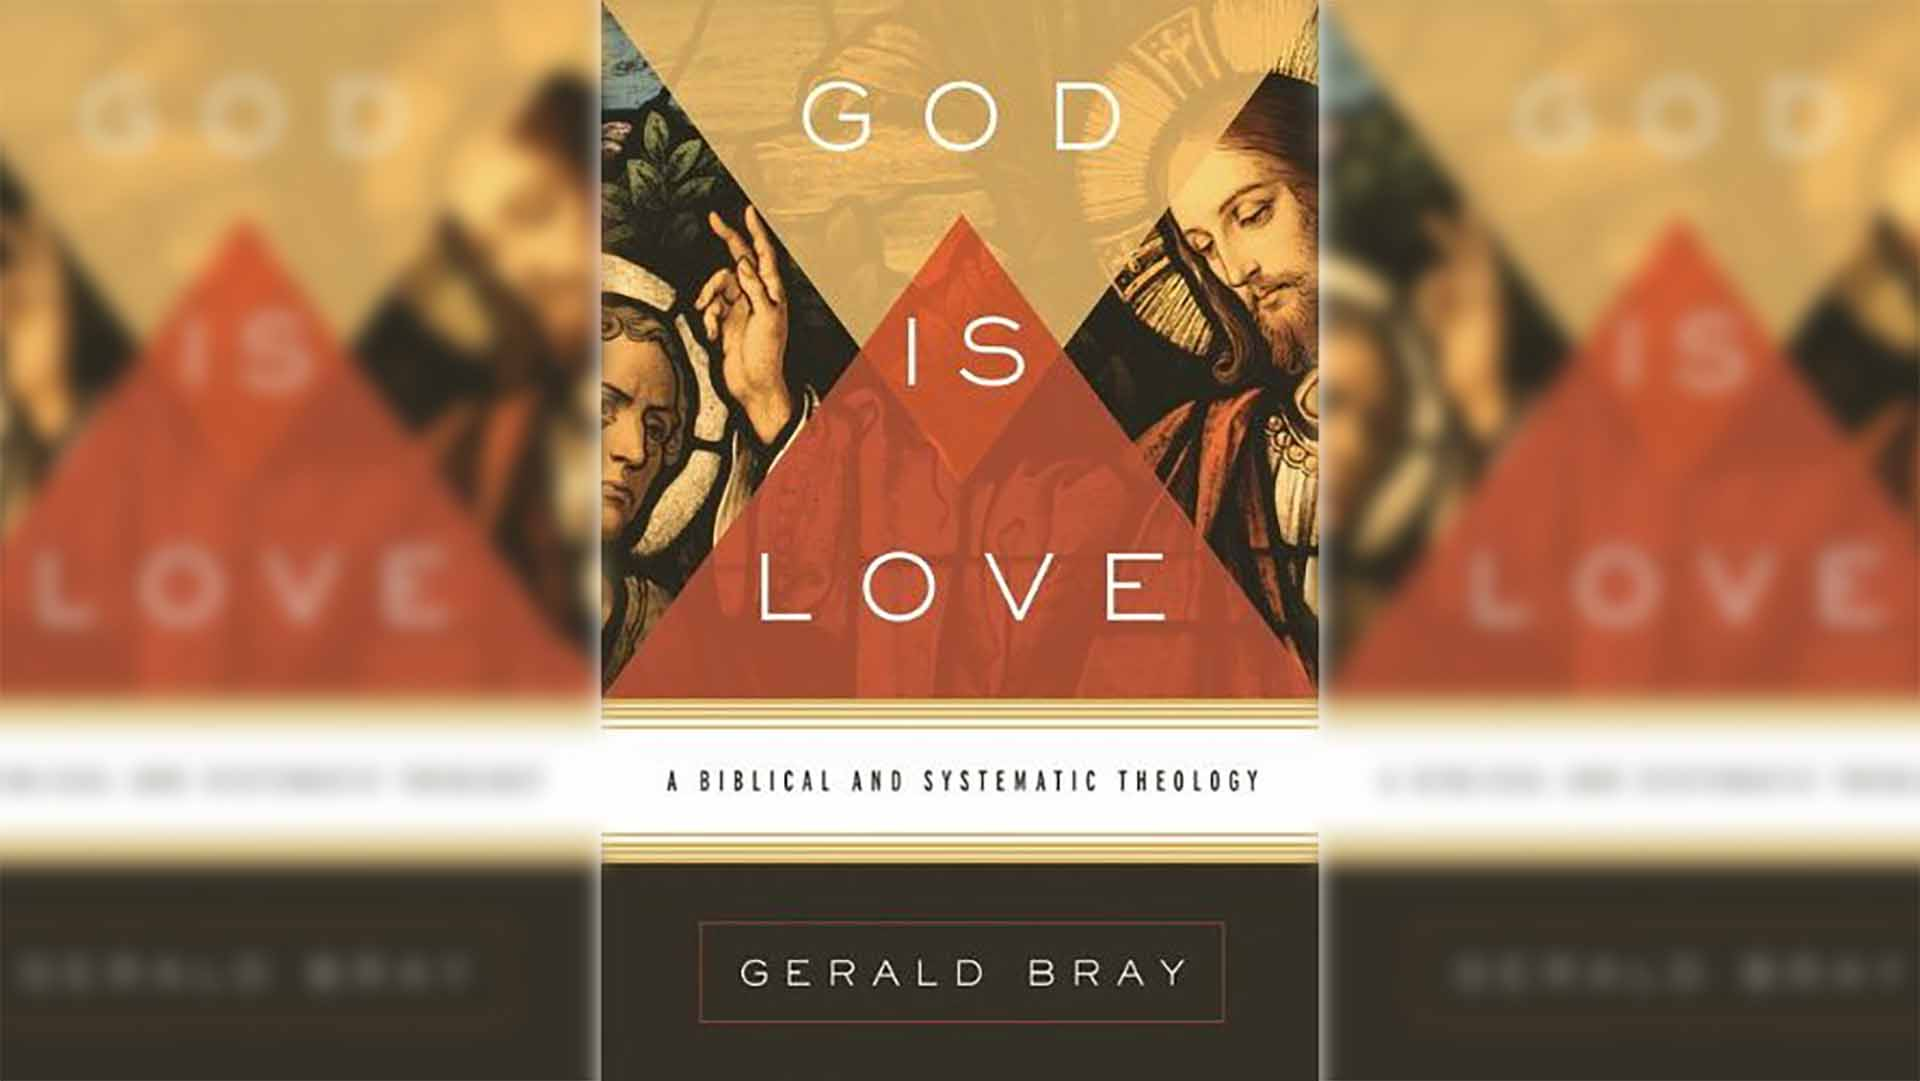 Guide God Is Love: A Biblical and Systematic Theology